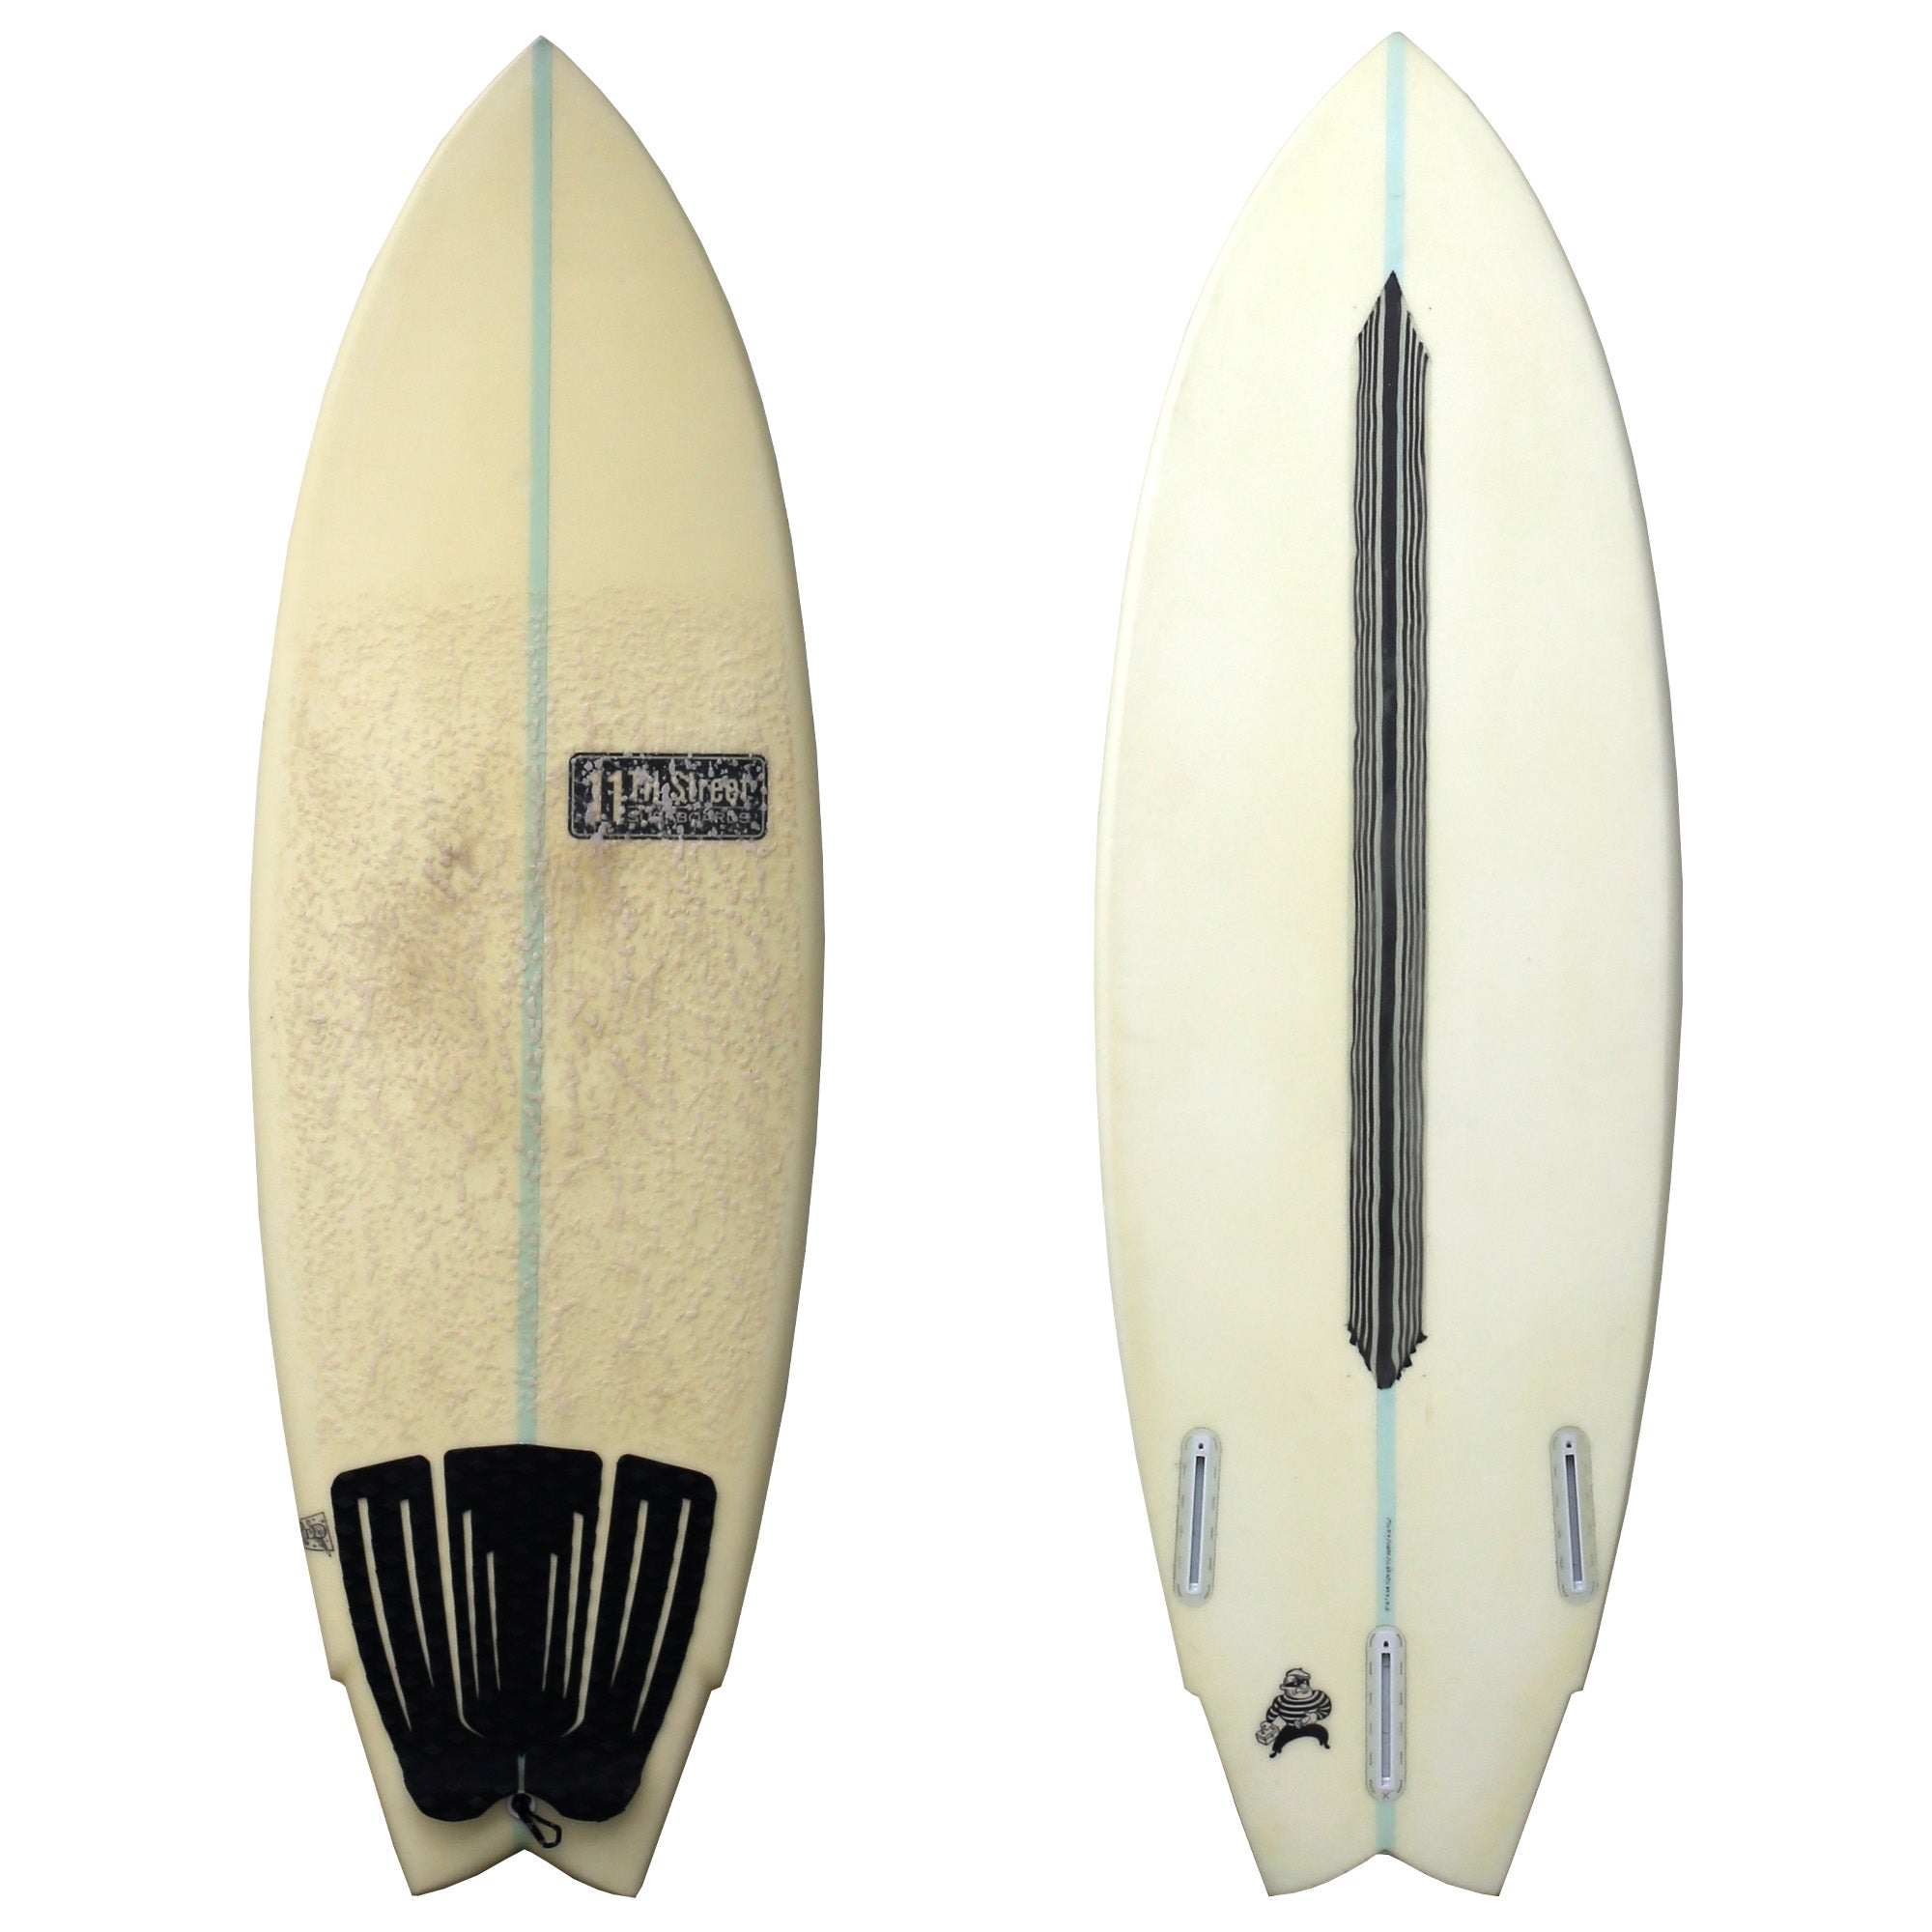 11th Street Surfboards The Thief 5'3 Used Surfboard